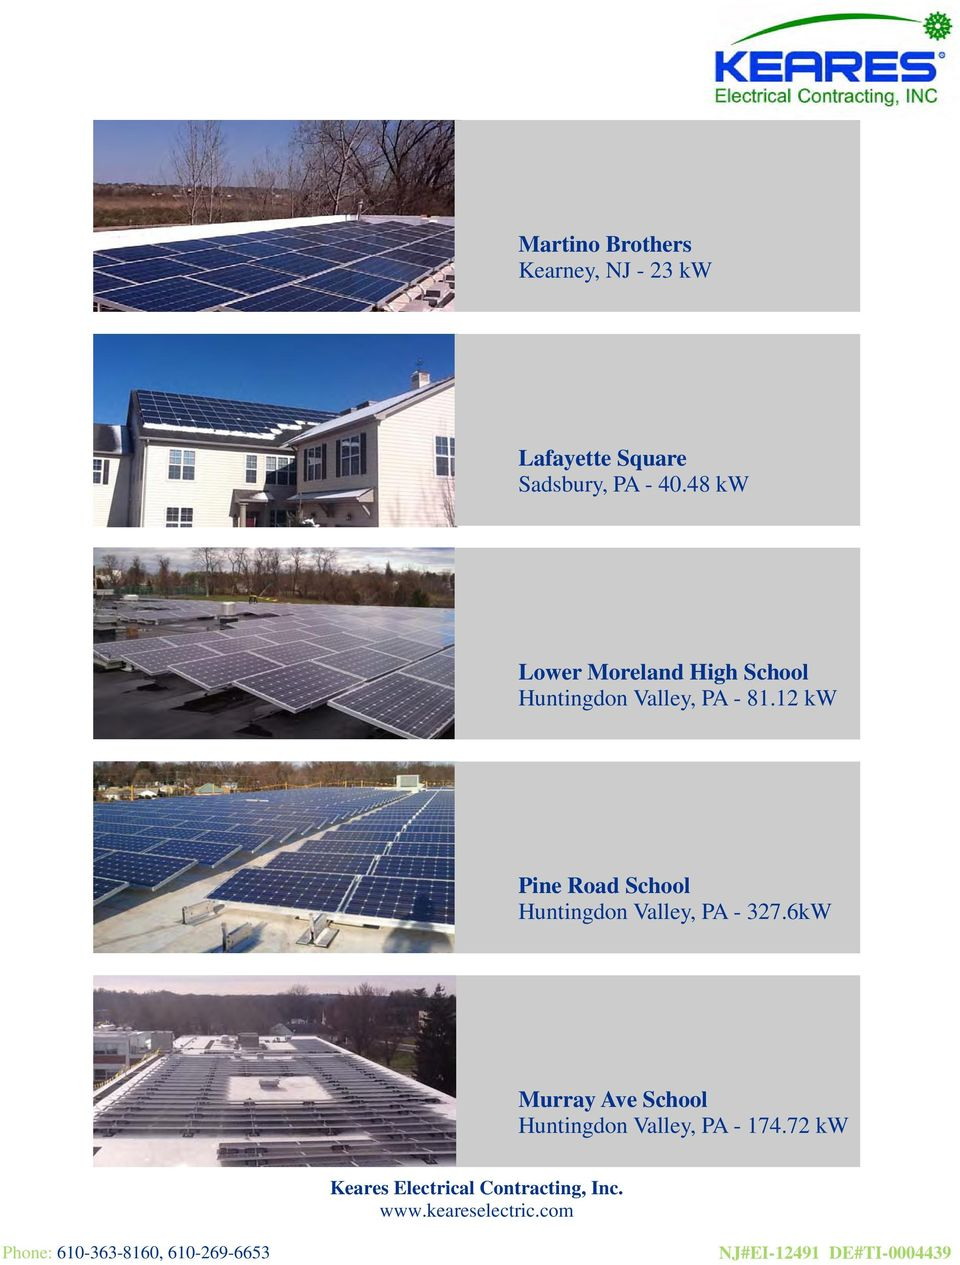 48 kw Lower Moreland High School Huntingdon Valley, PA - 81.